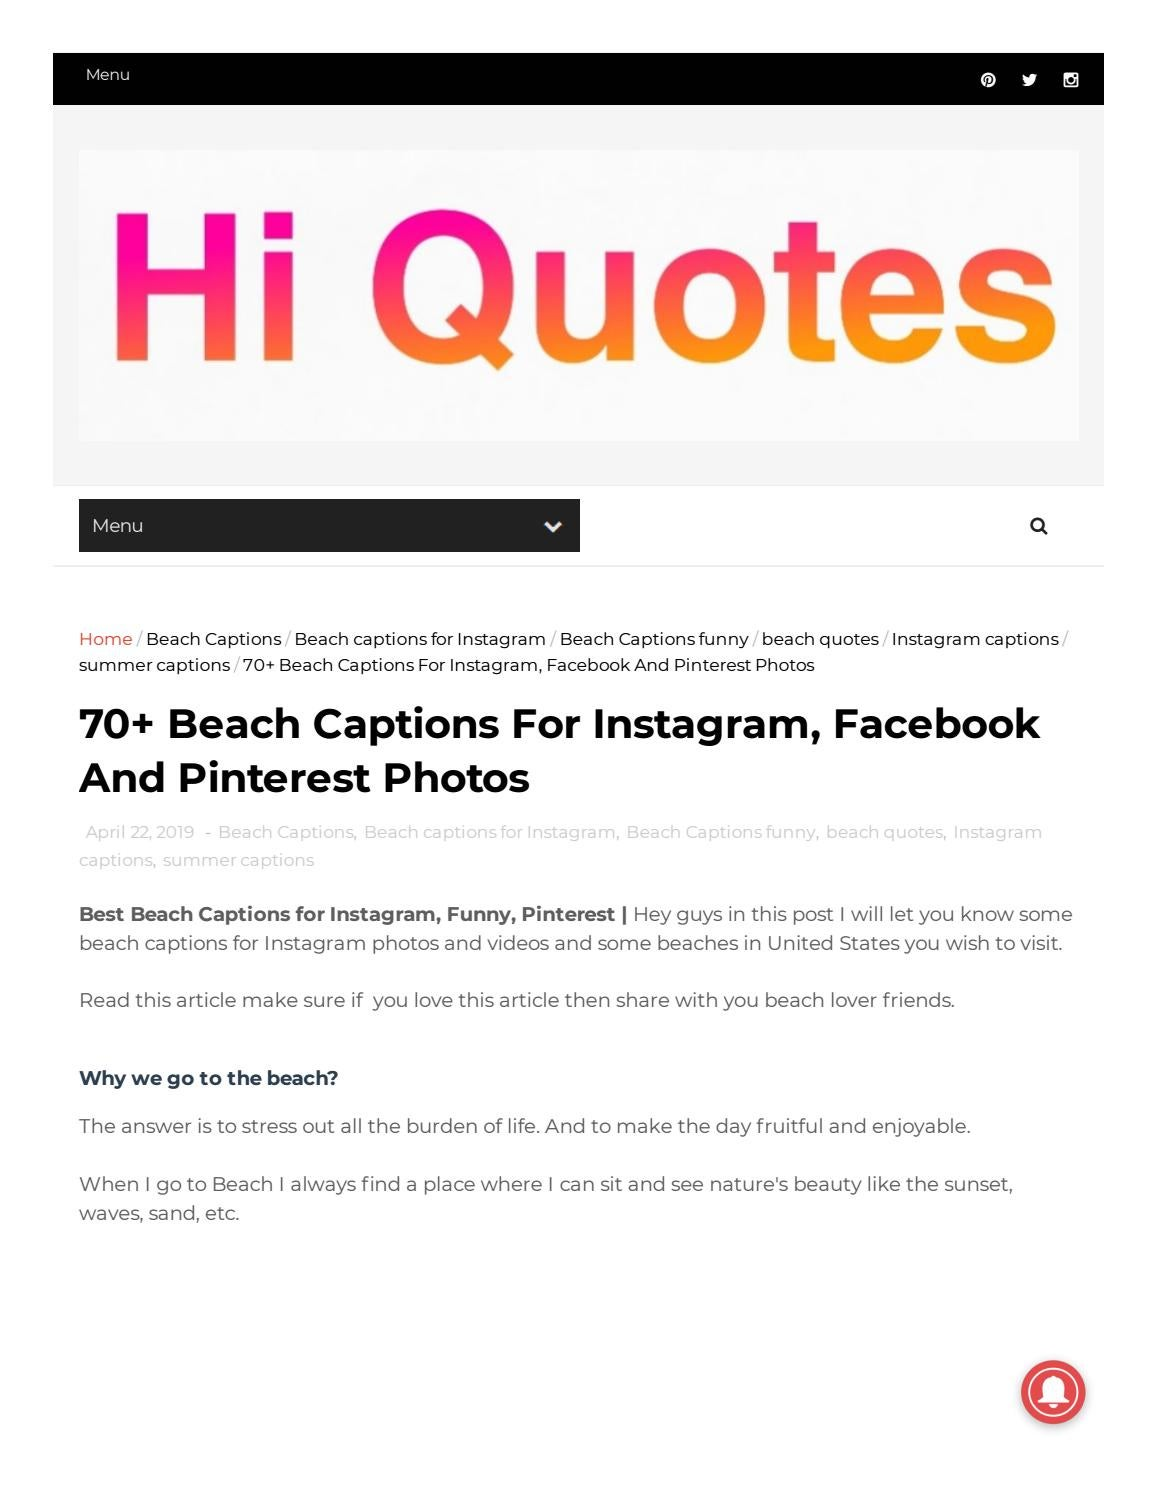 70 Beach Captions for Instagram, Facebook And Pinterest